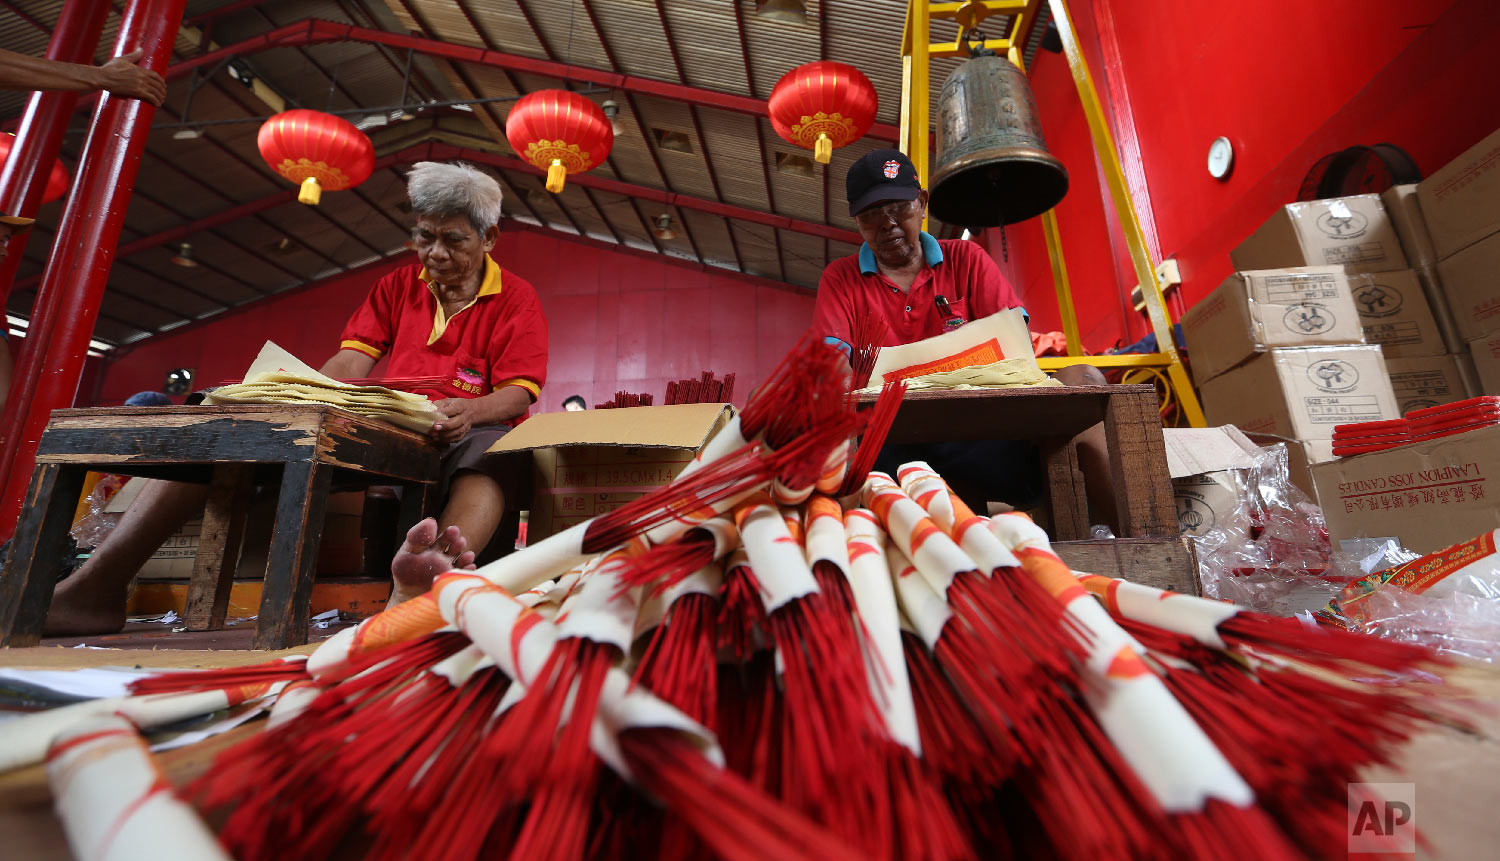 Workers prepare for the Lunar New Year at the Dharma Bakti Temple in Chinatown area of Jakarta, Indonesia, Monday, Jan. 28, 2019. (AP Photo/ Achmad Ibrahim)